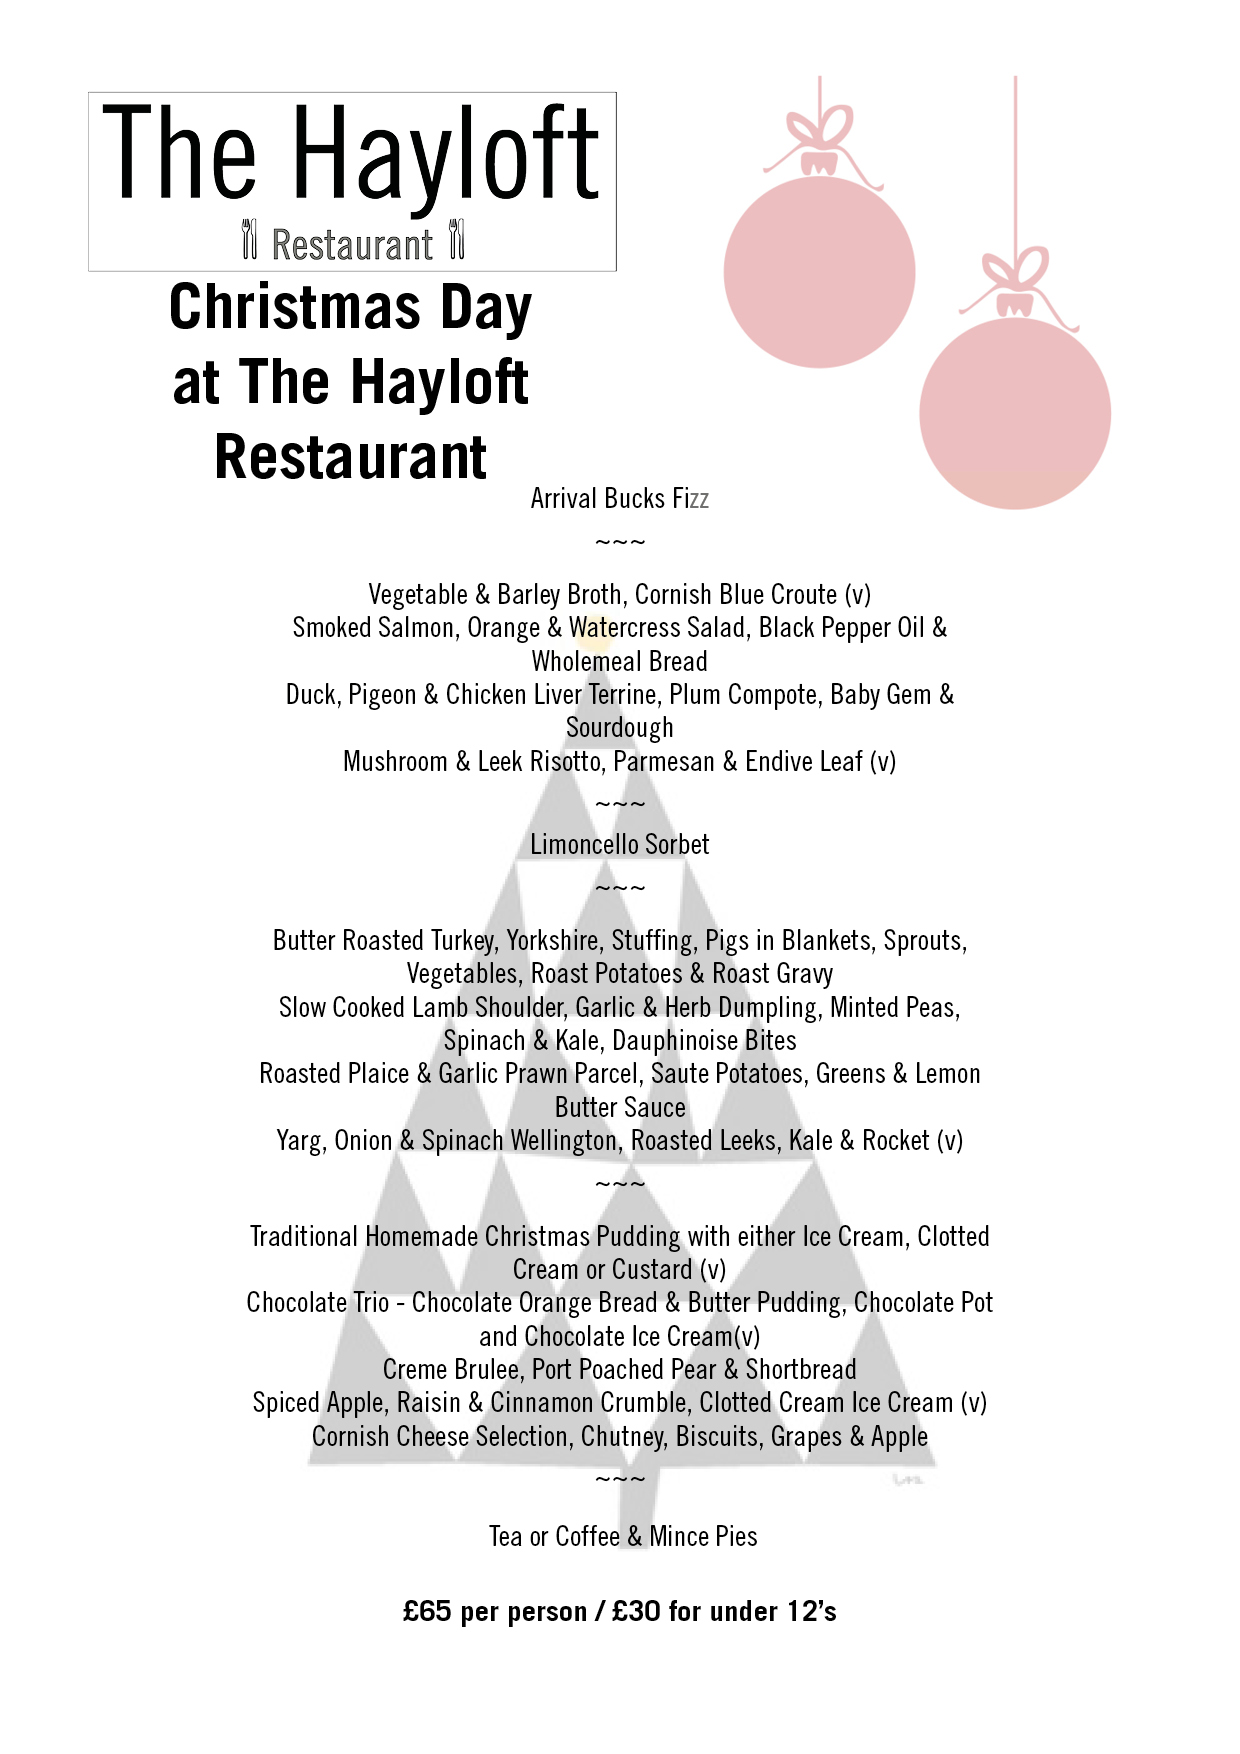 Christmas Day at The Hayloft 2018